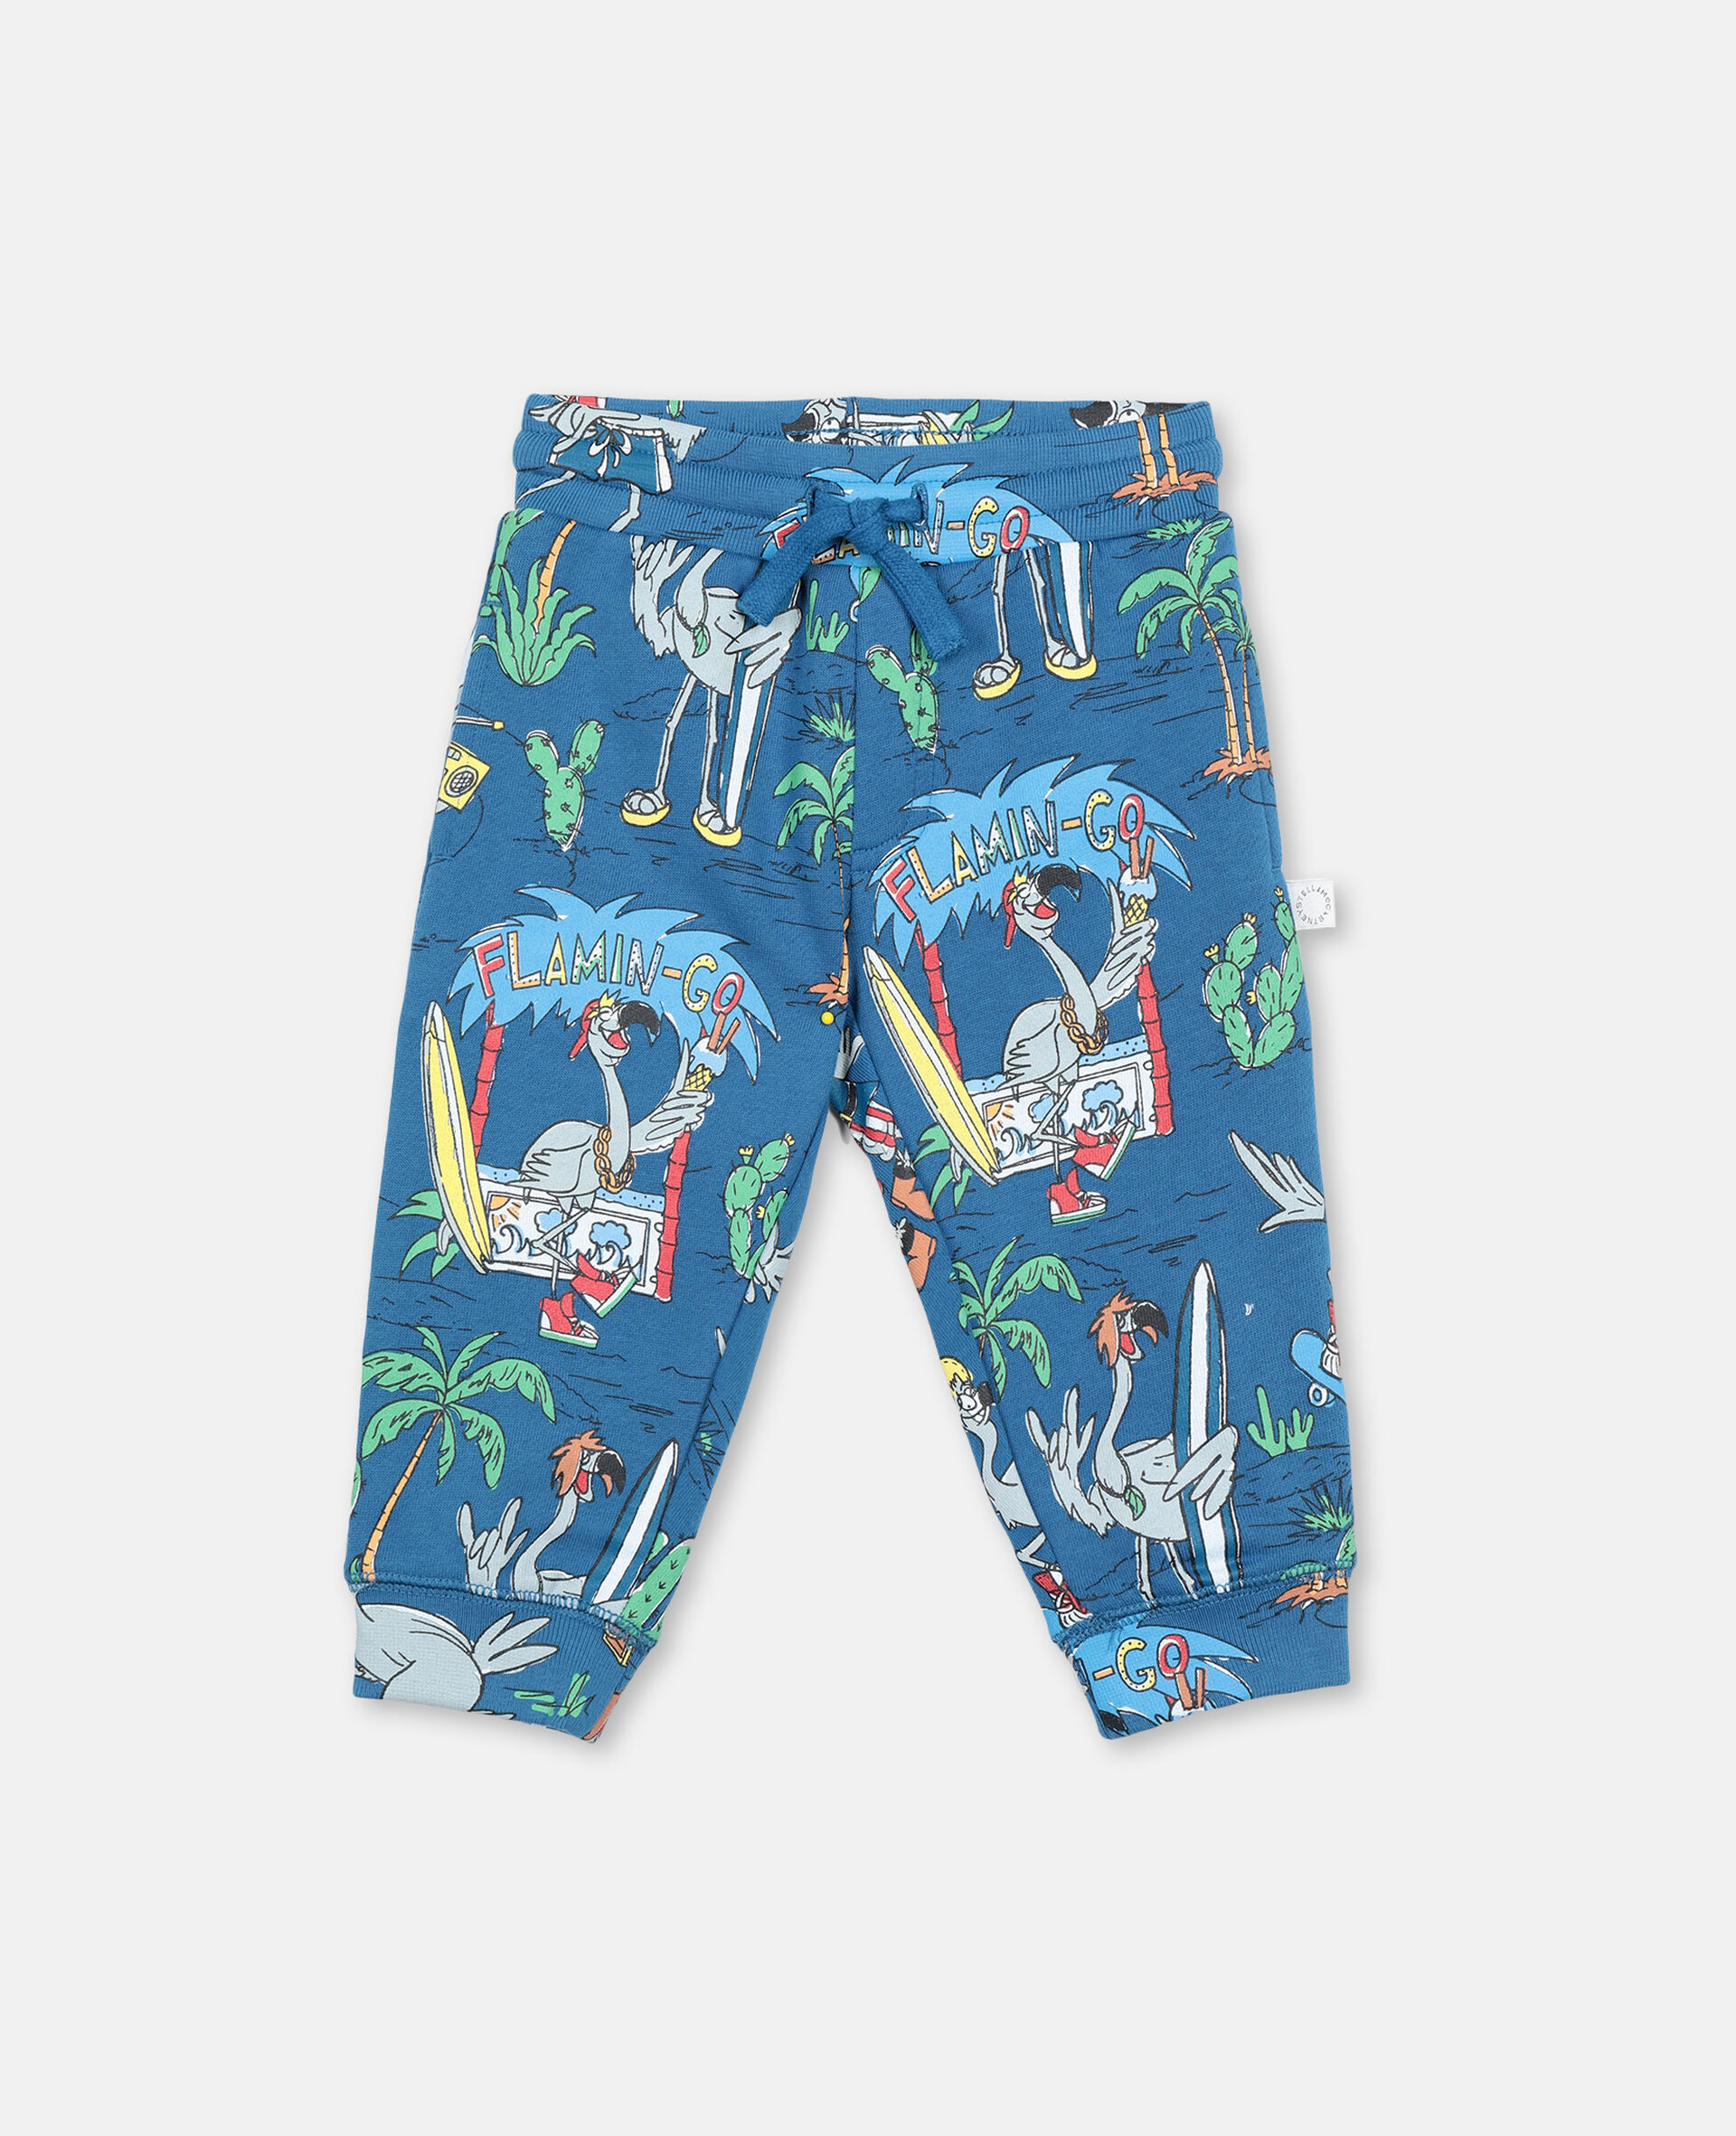 Flamingo Land Cotton Joggers-Blue-large image number 0